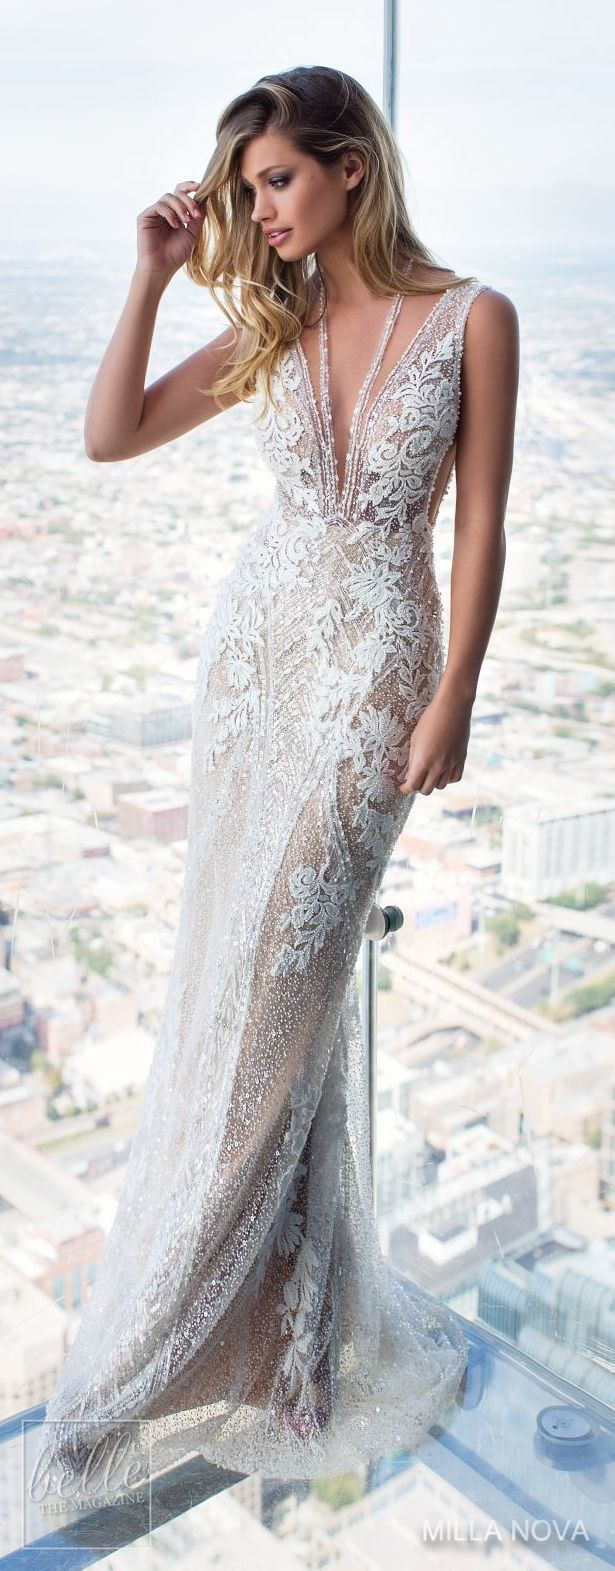 Milla nova wedding dresses collection wedding dresses